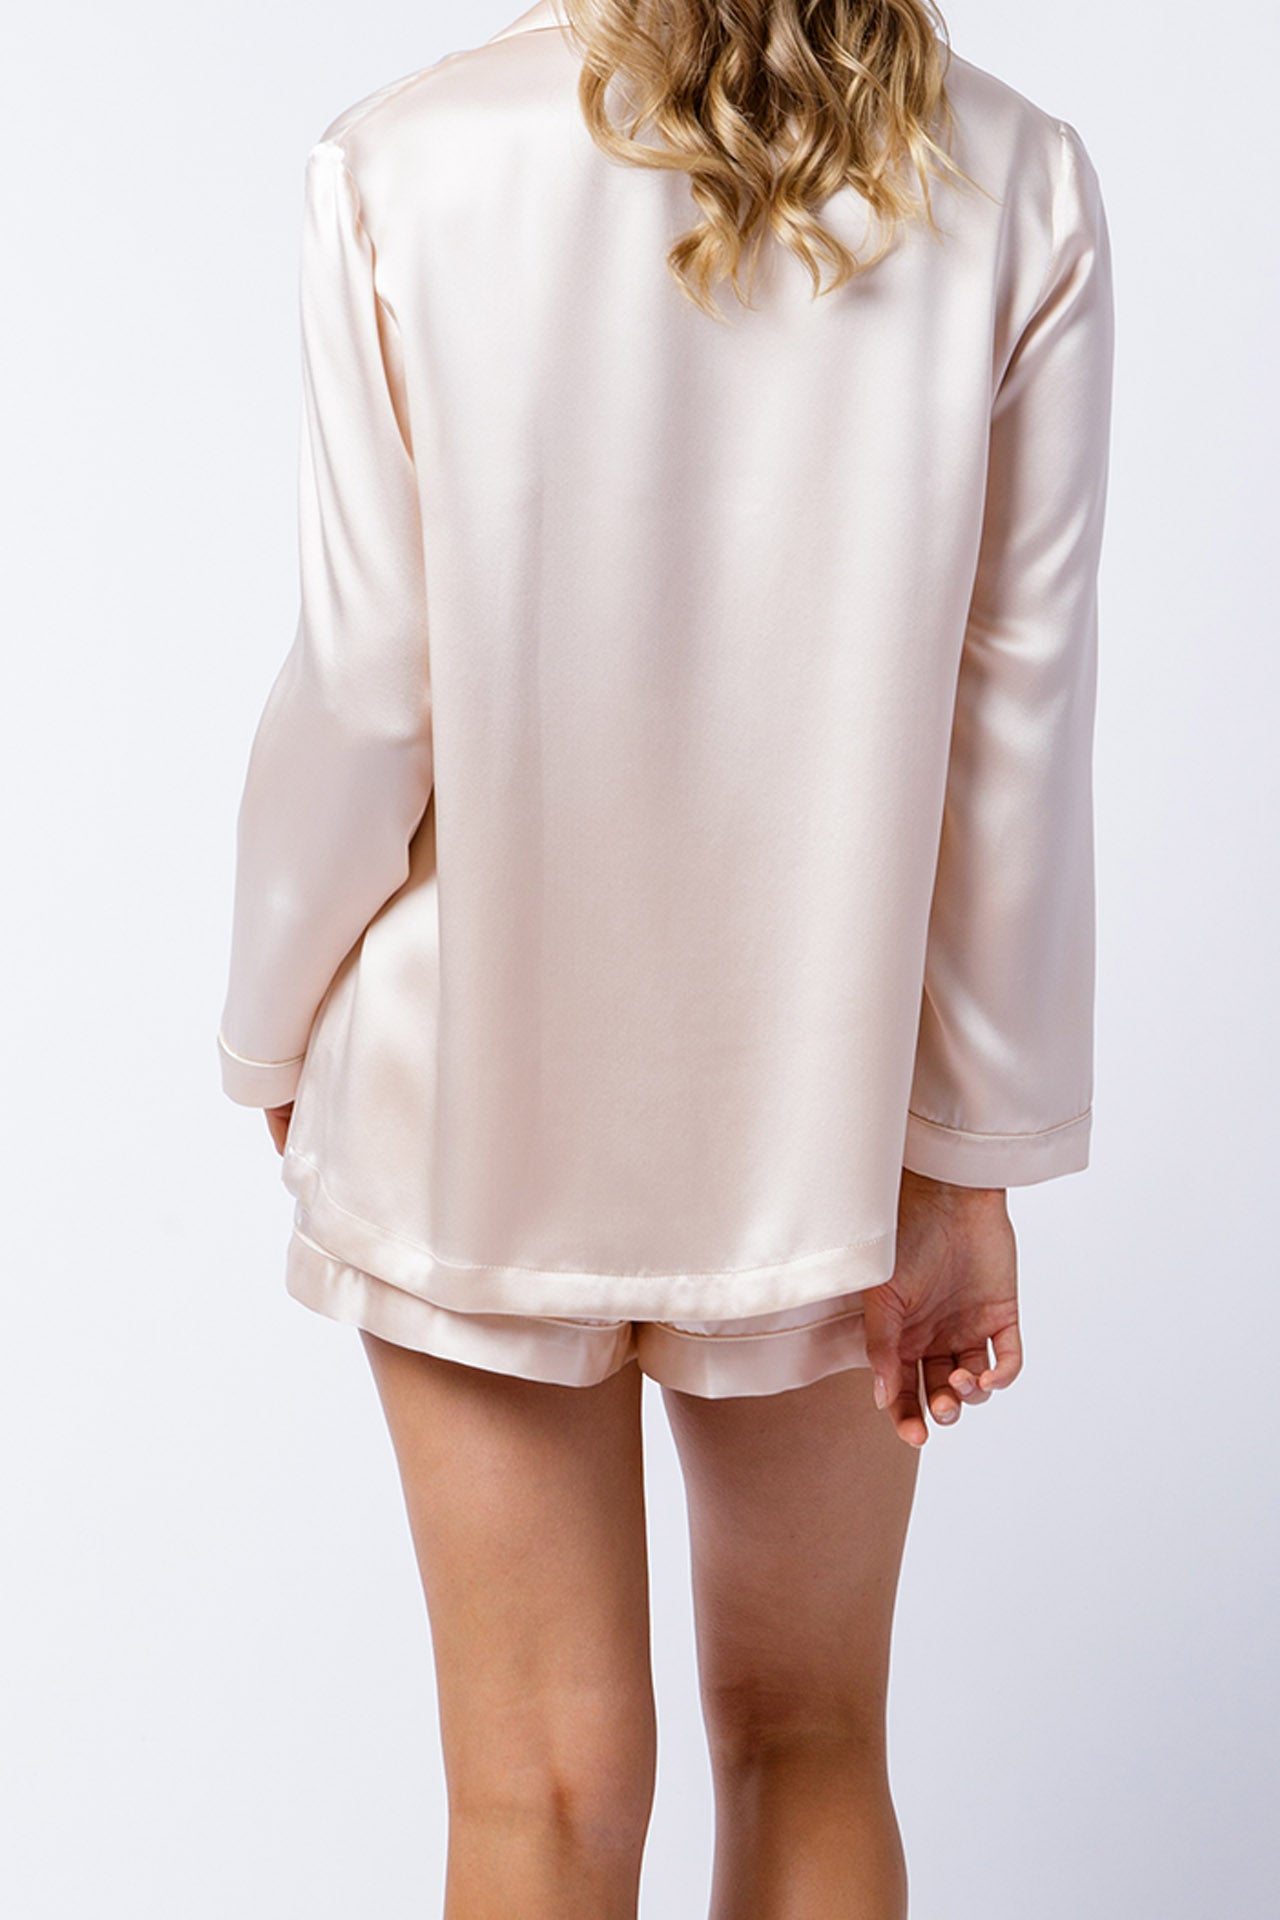 Ann shirt in blush, back